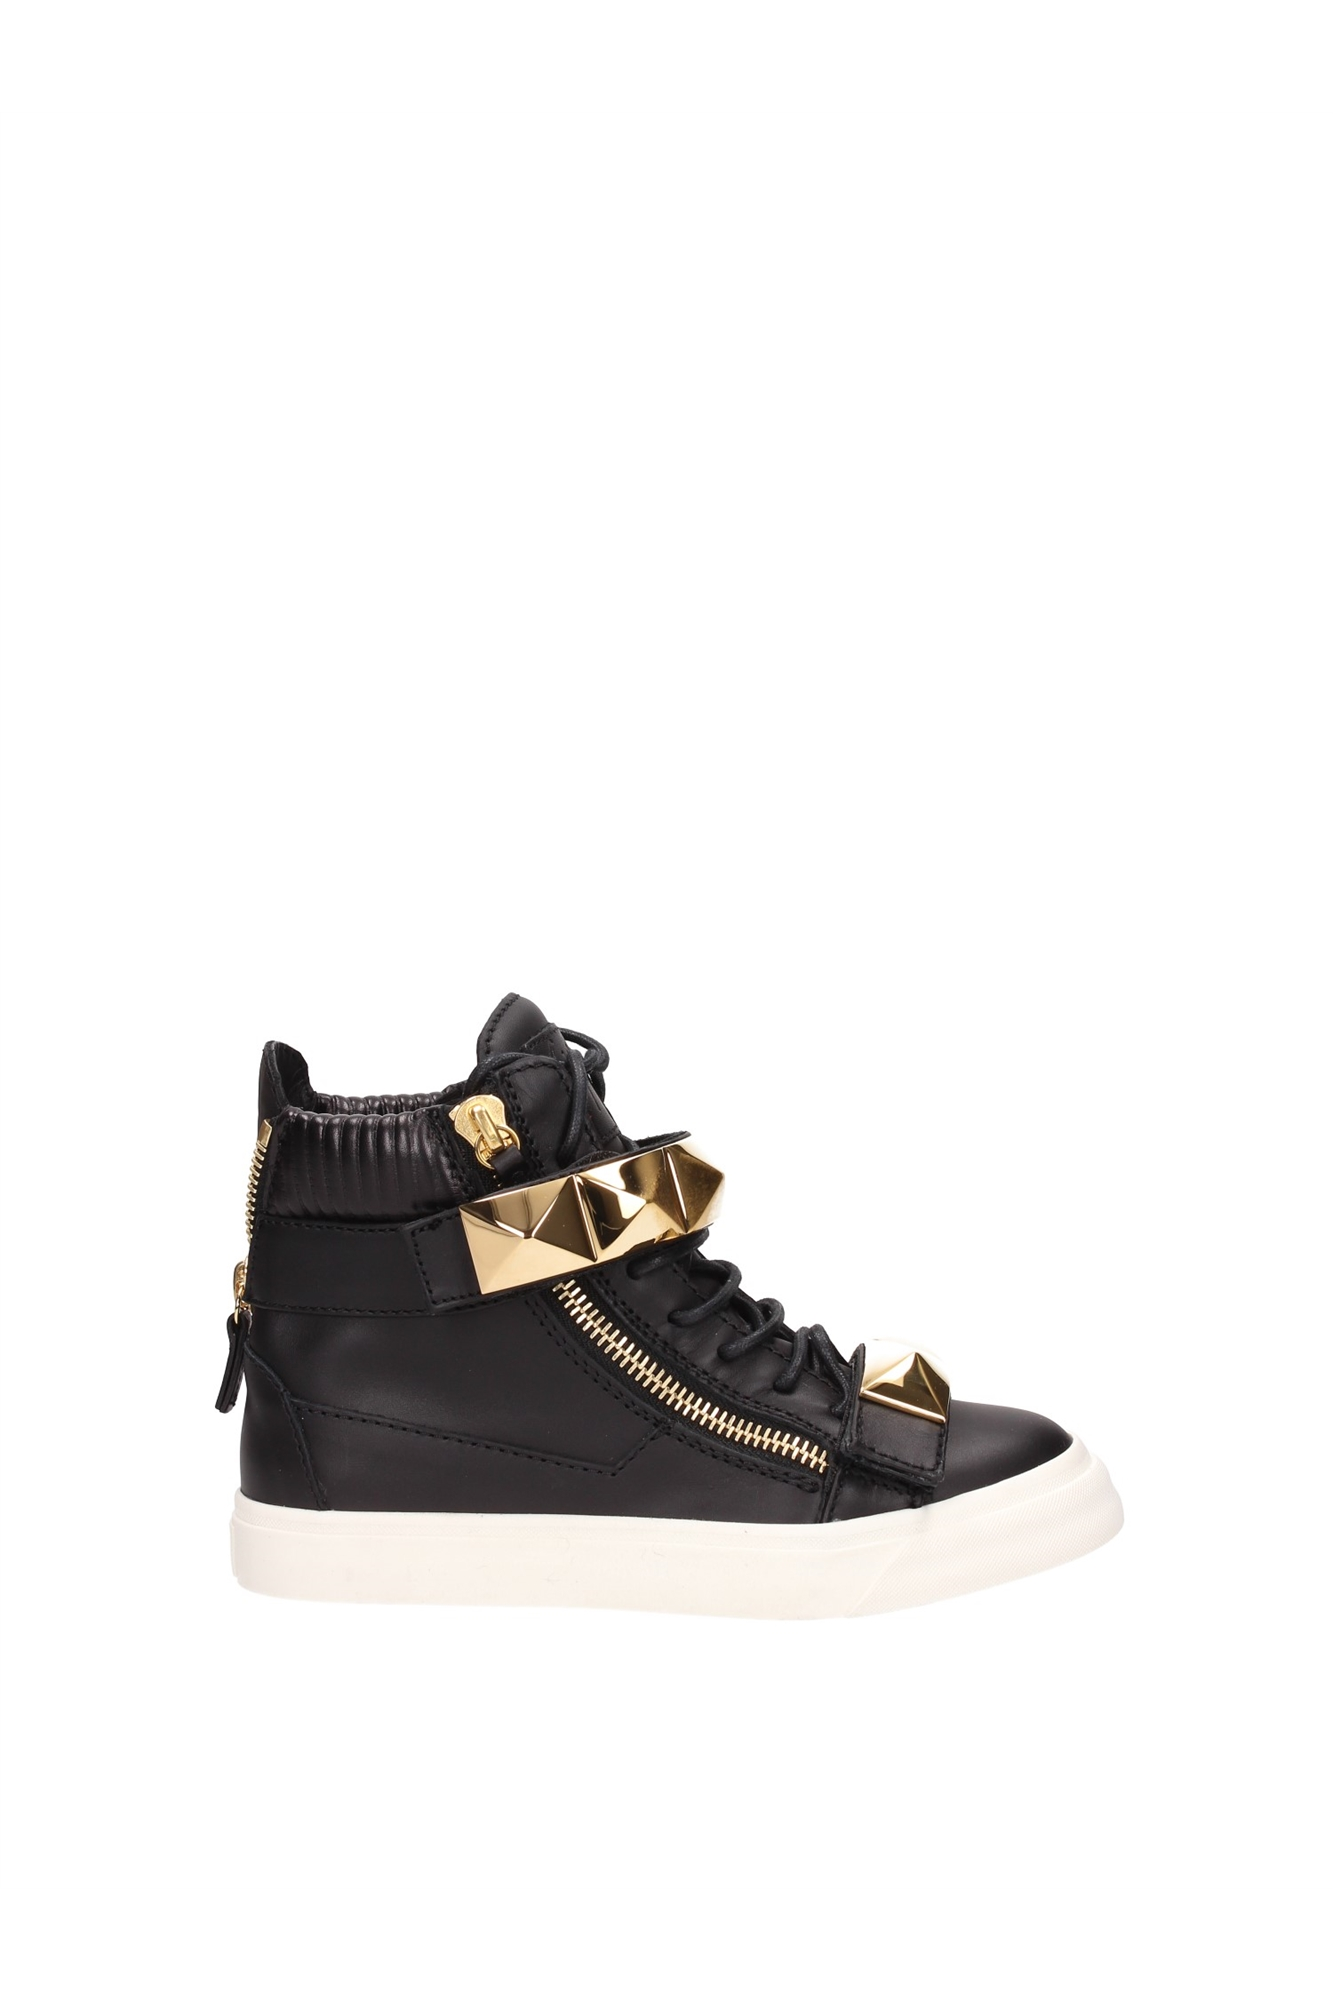 sneakers giuseppe zanotti damen leder schwarz rw4079londonnero ebay. Black Bedroom Furniture Sets. Home Design Ideas